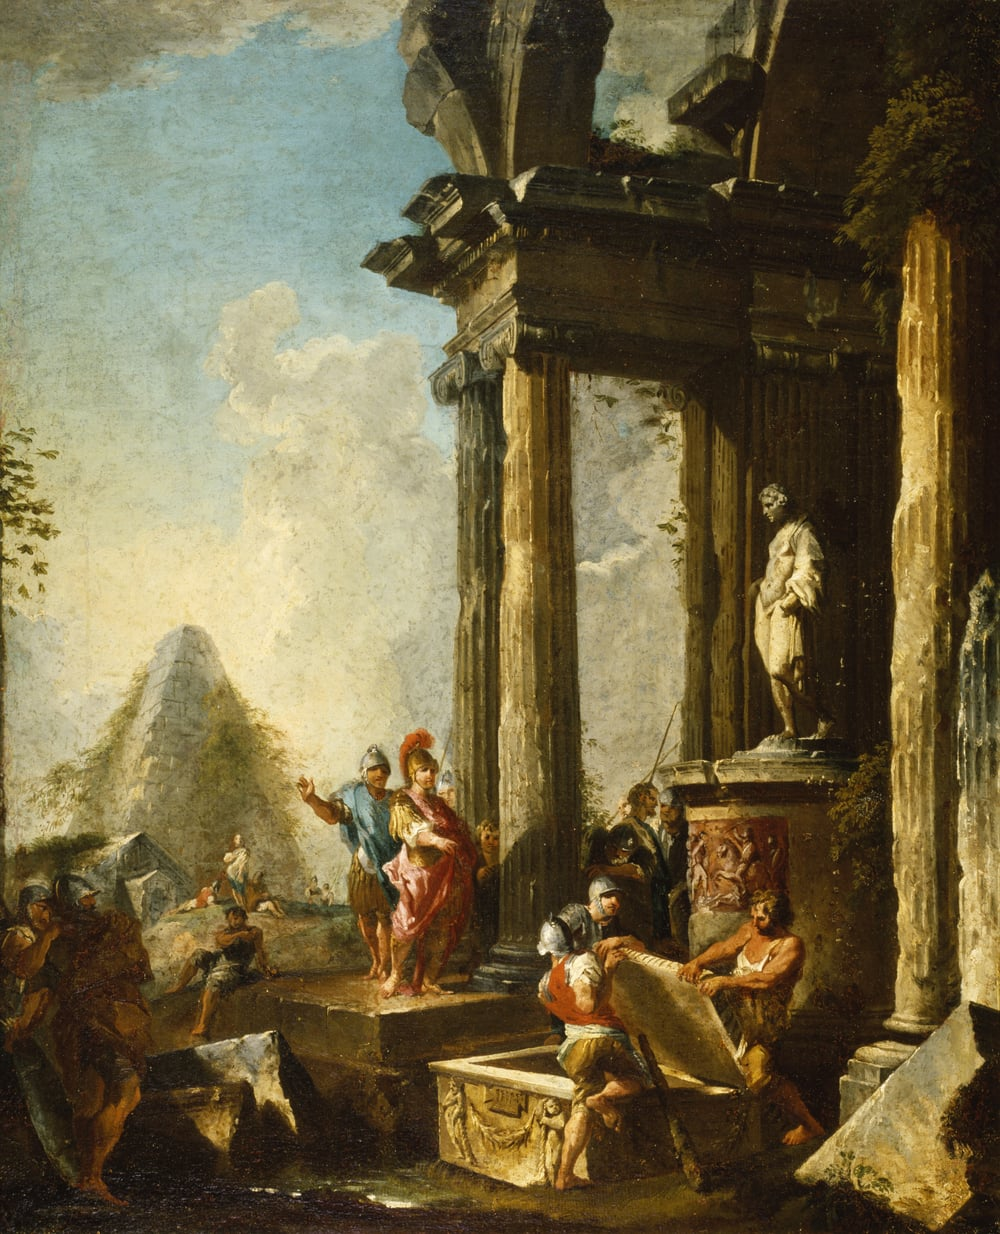 Alexander the Great at the Tomb of Achilles, Giovanni Paolo Panini, 1718-1719